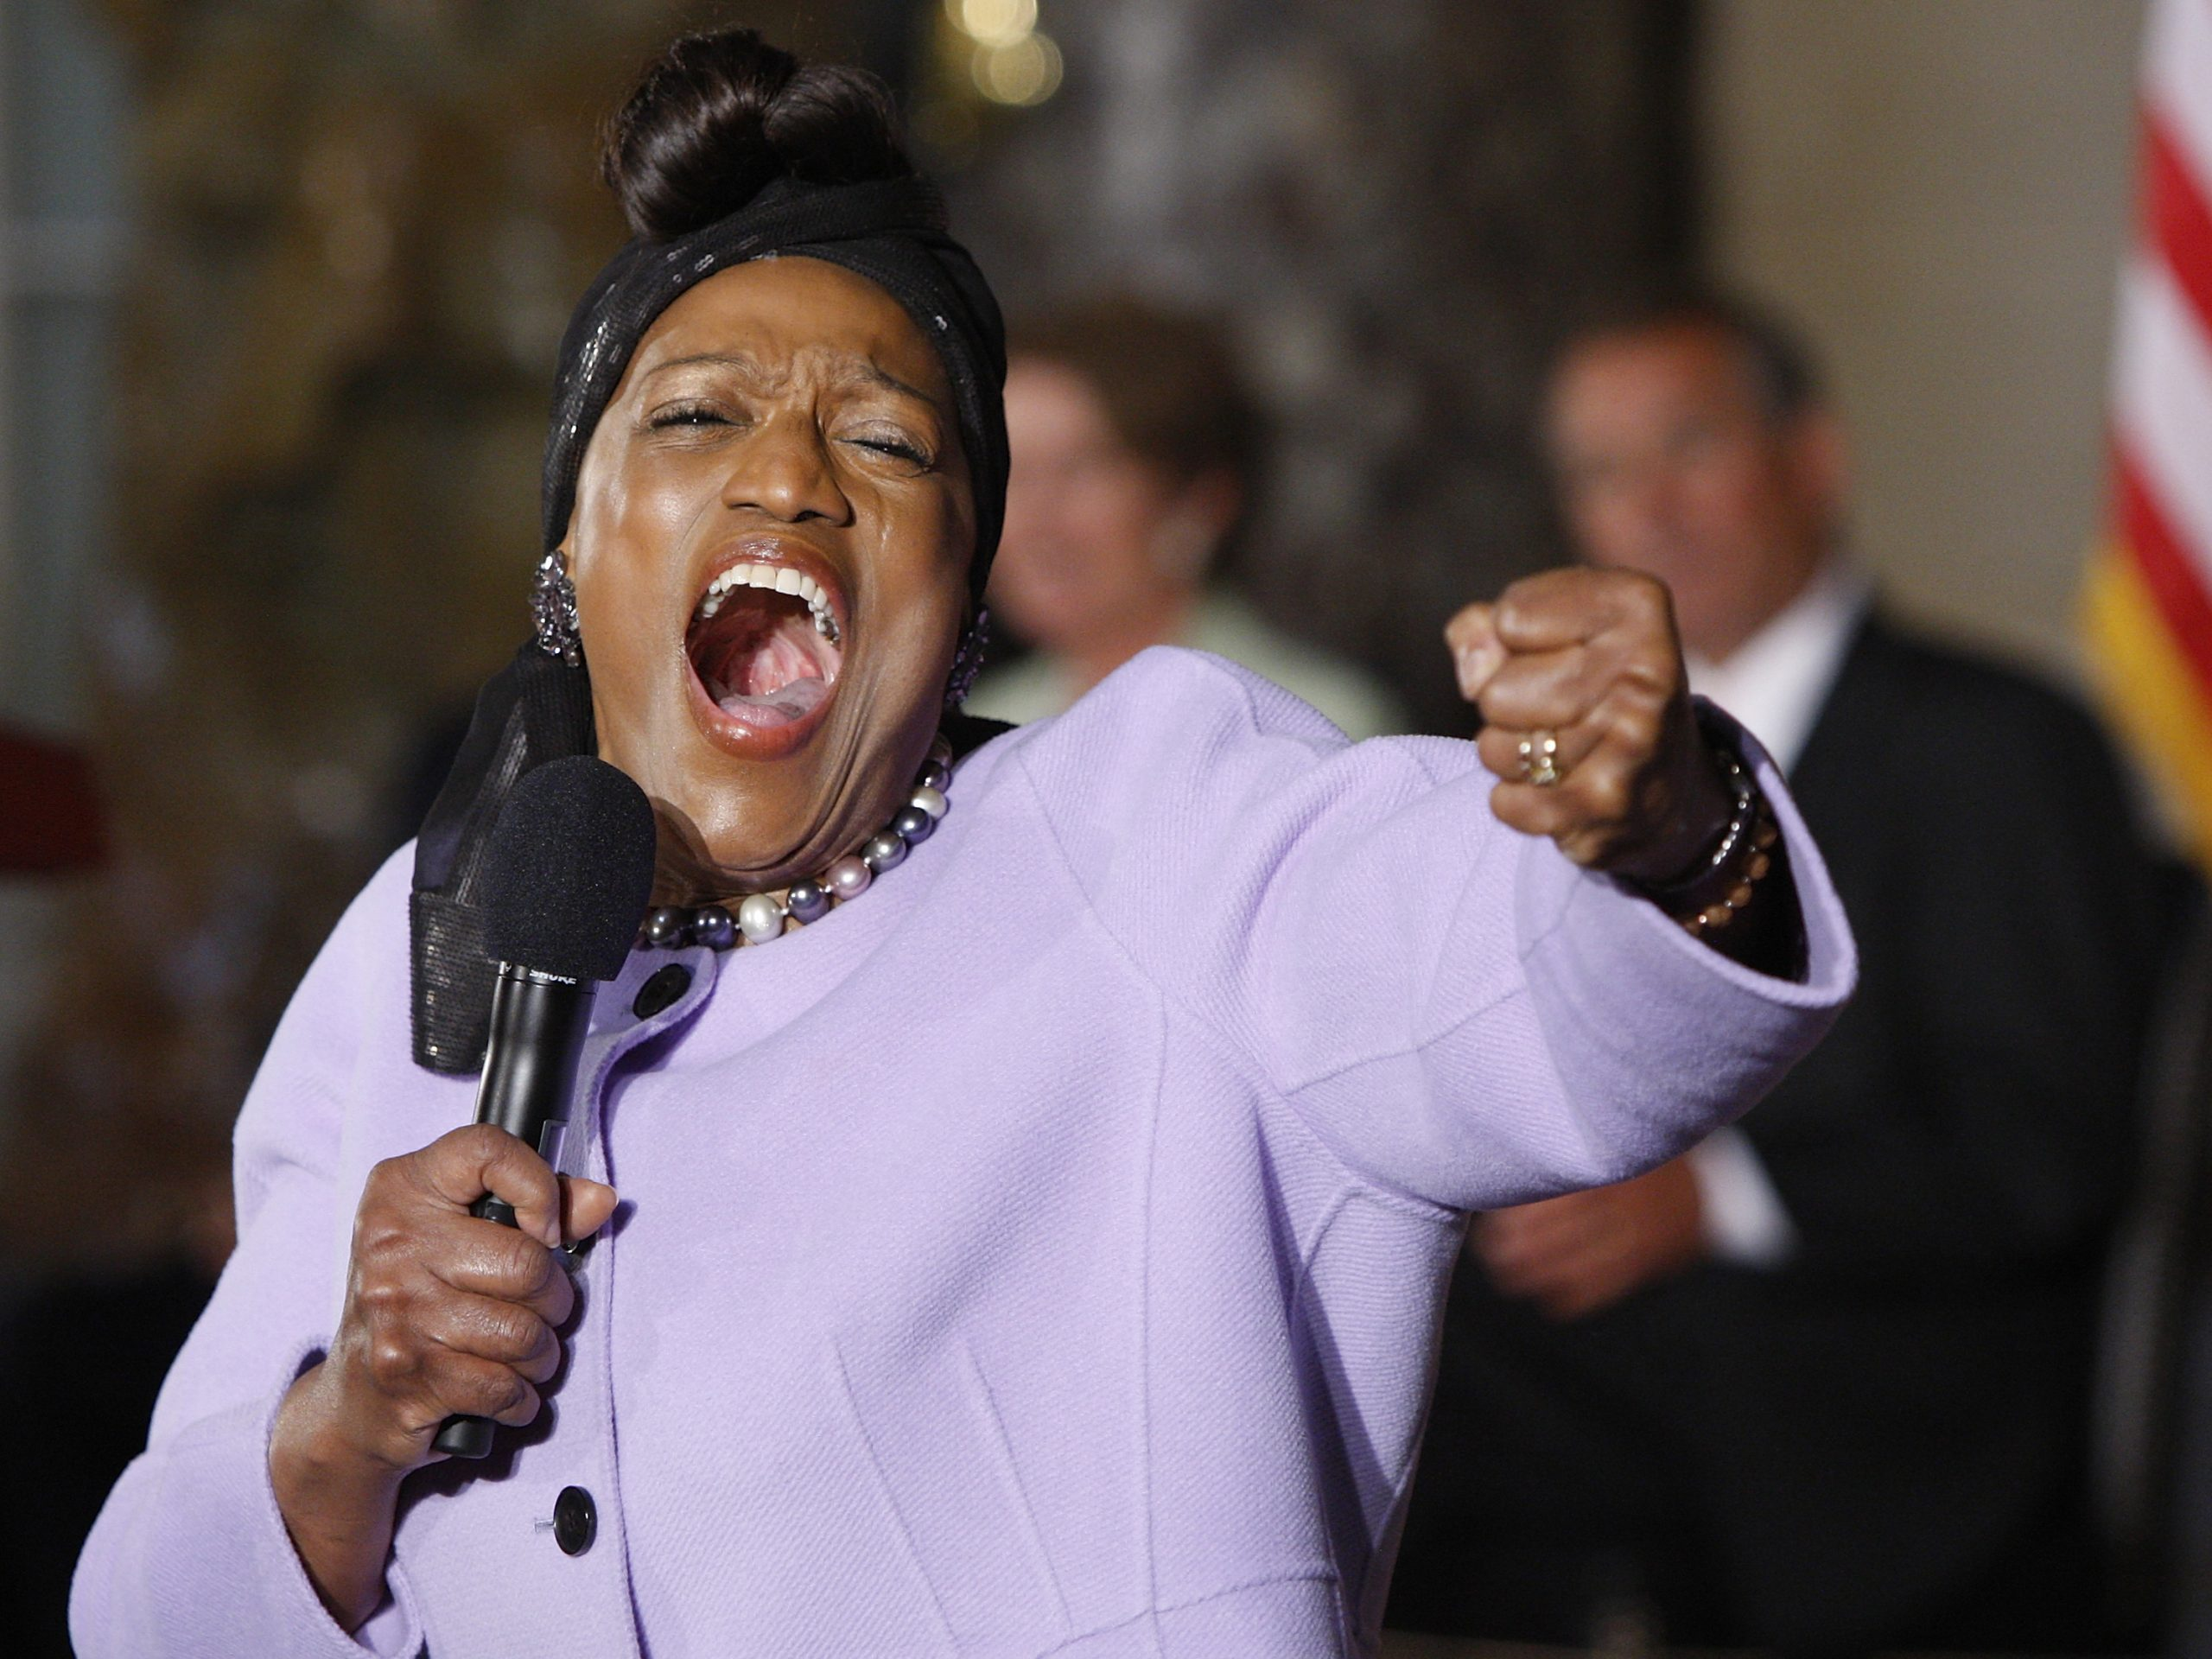 Jessye Norman performs at a ceremony on the 50th anniversary of the March on Washington for Jobs and Freedom at the U.S. Capitol in 2013.